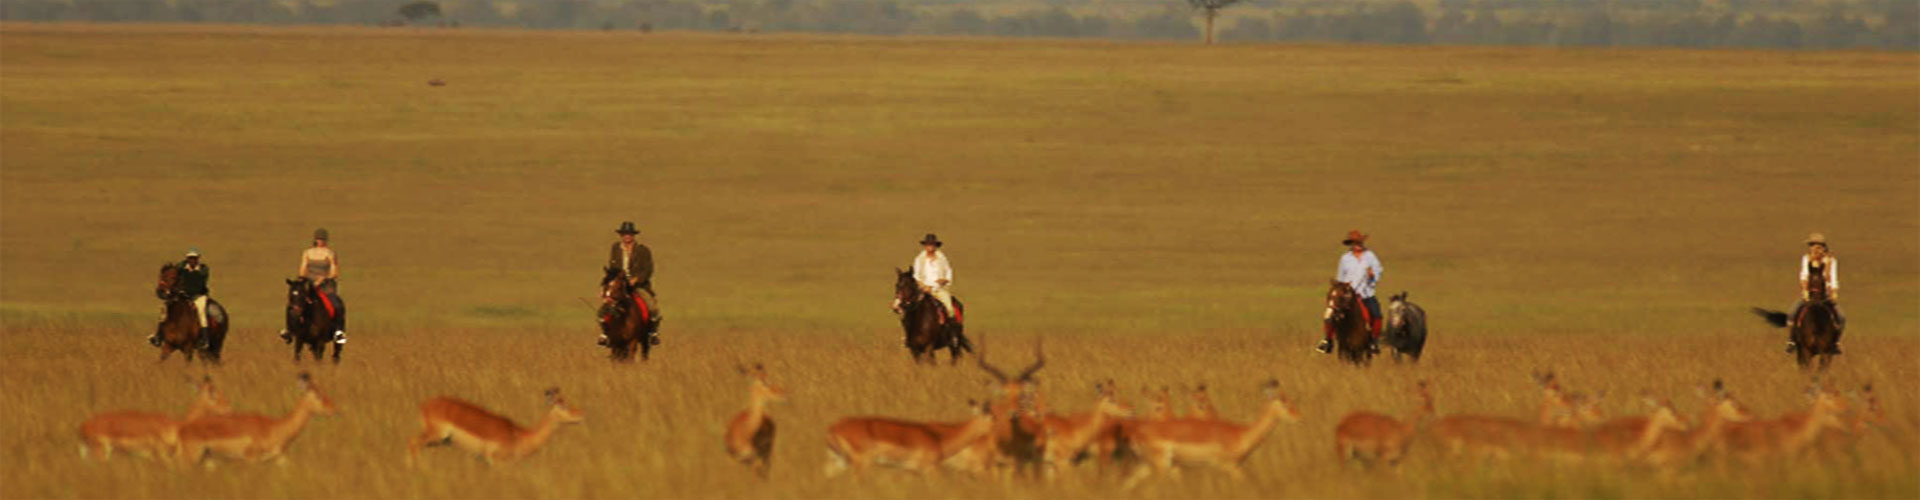 Luxury Riding Safaris